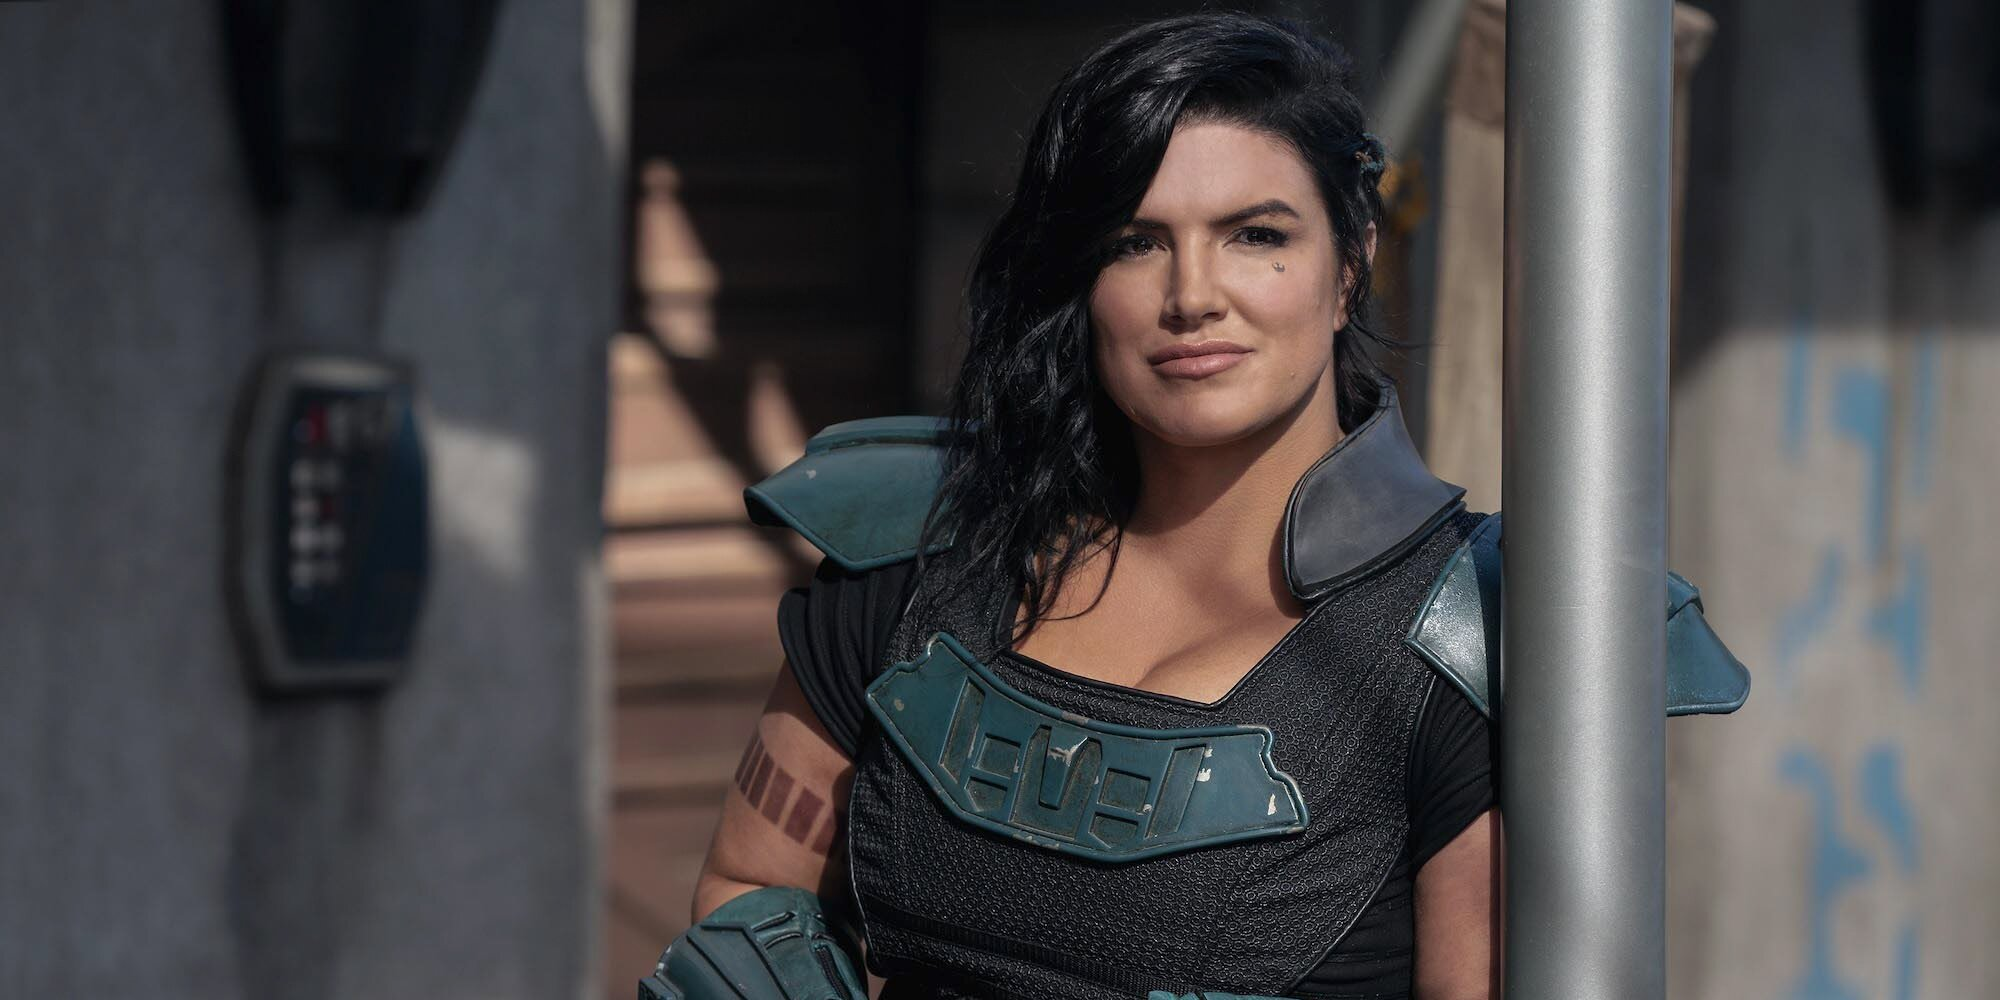 The Mandalorian's Gina Carano Will Not Return to Disney+ Series After Social Media Controversy